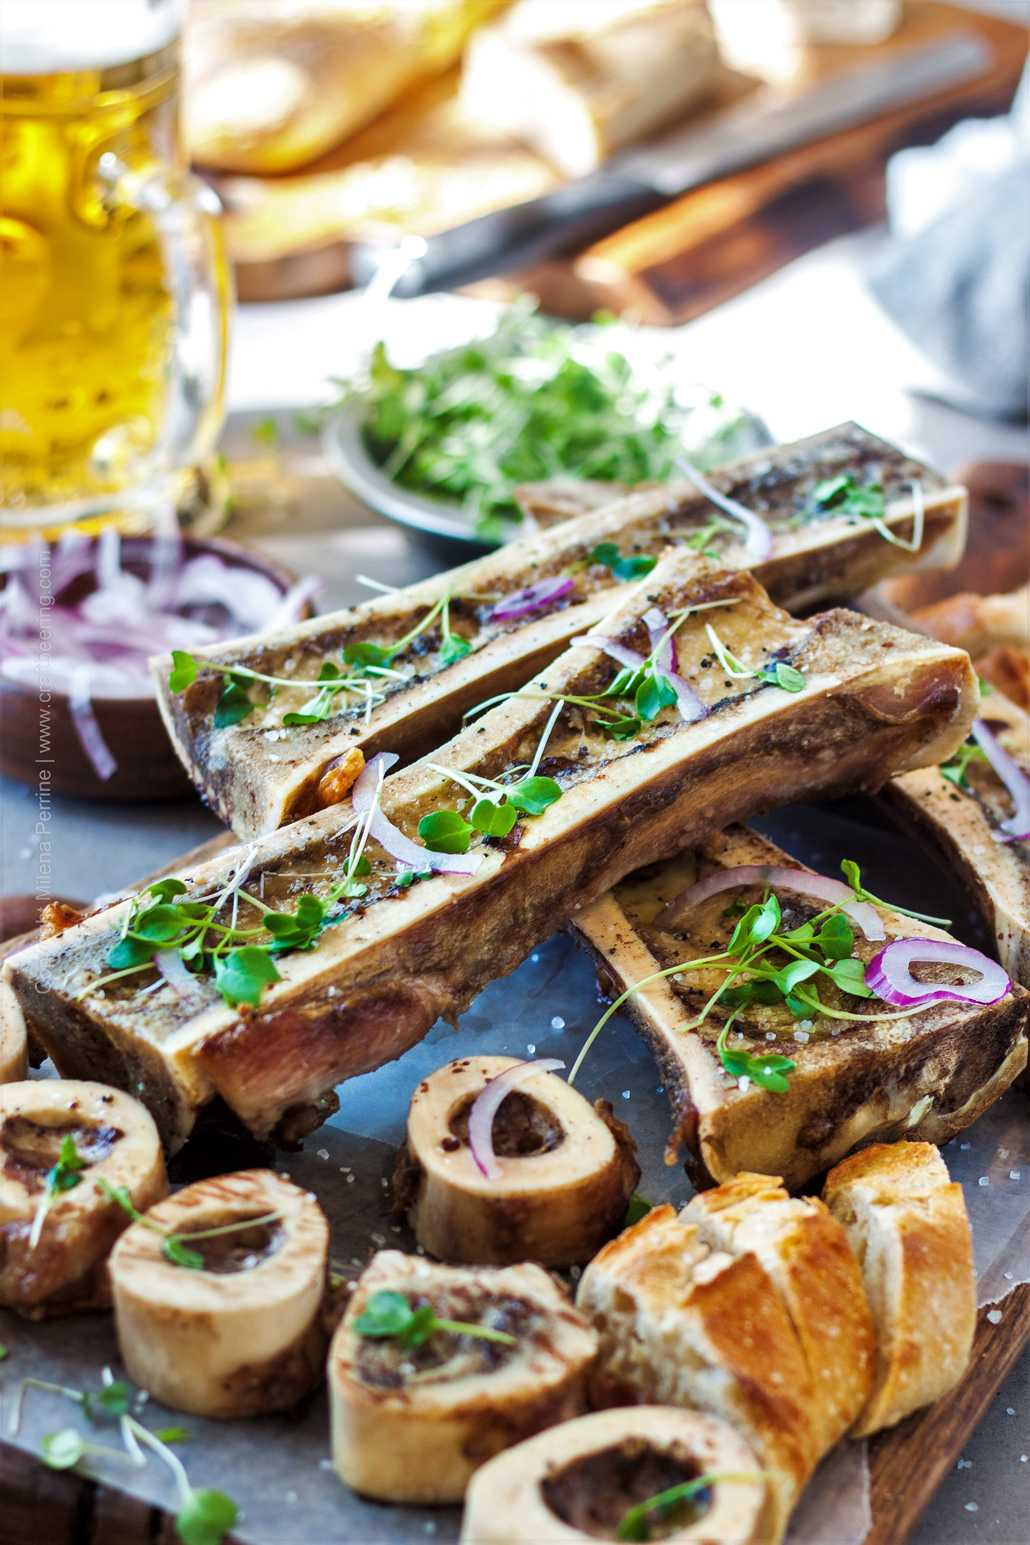 Restaurant style roasted bone marrow.